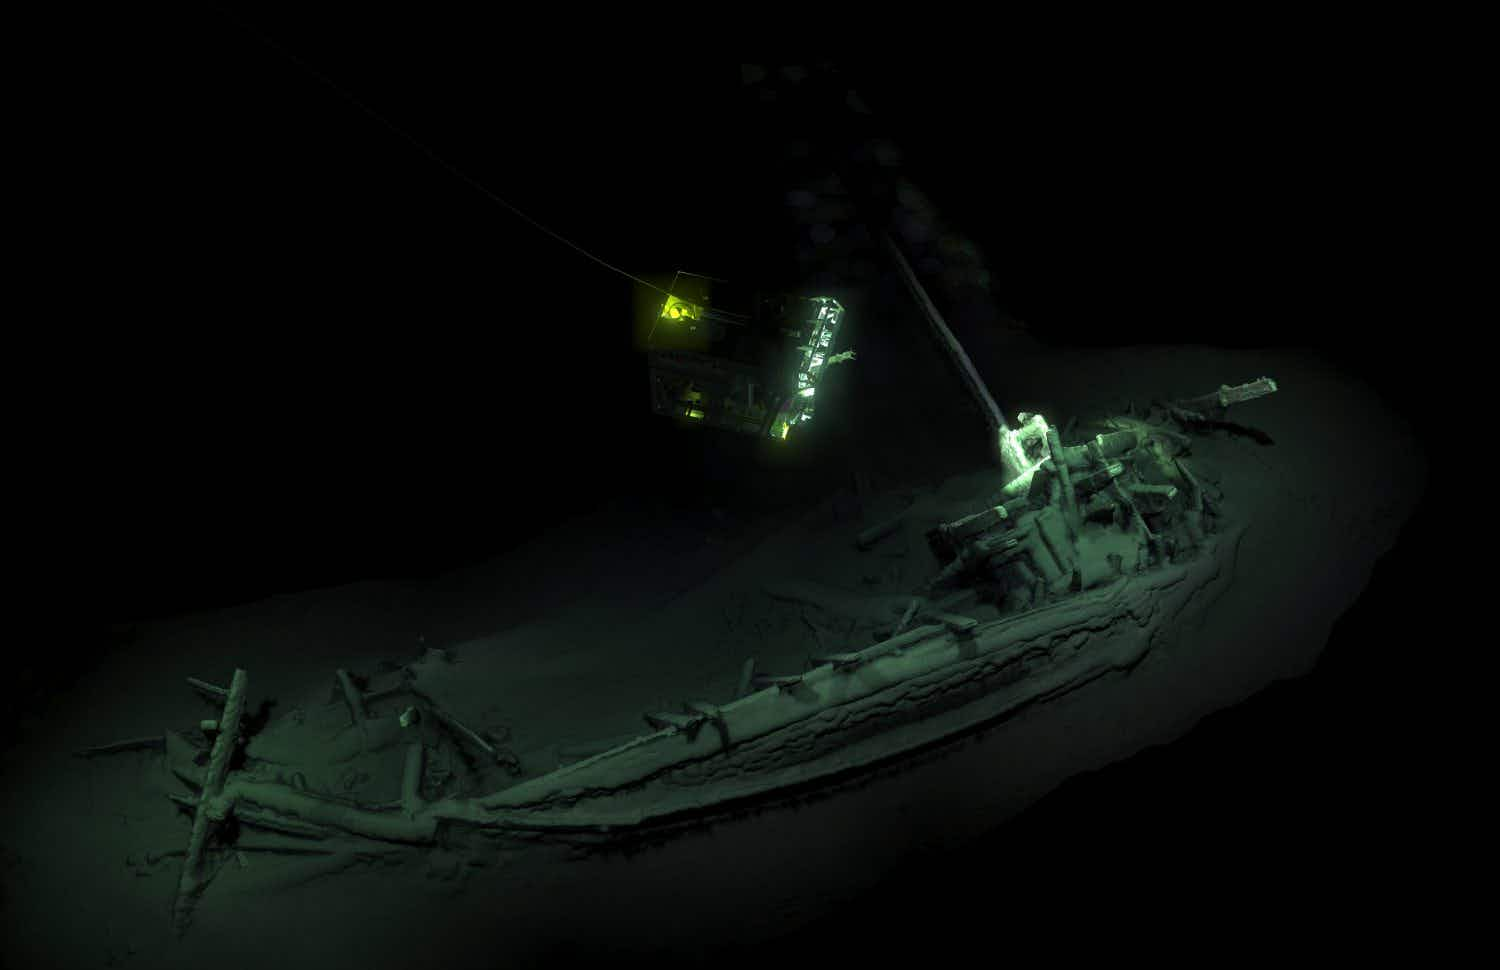 A 2400-year-old shipwreck has been found intact in the Black Sea